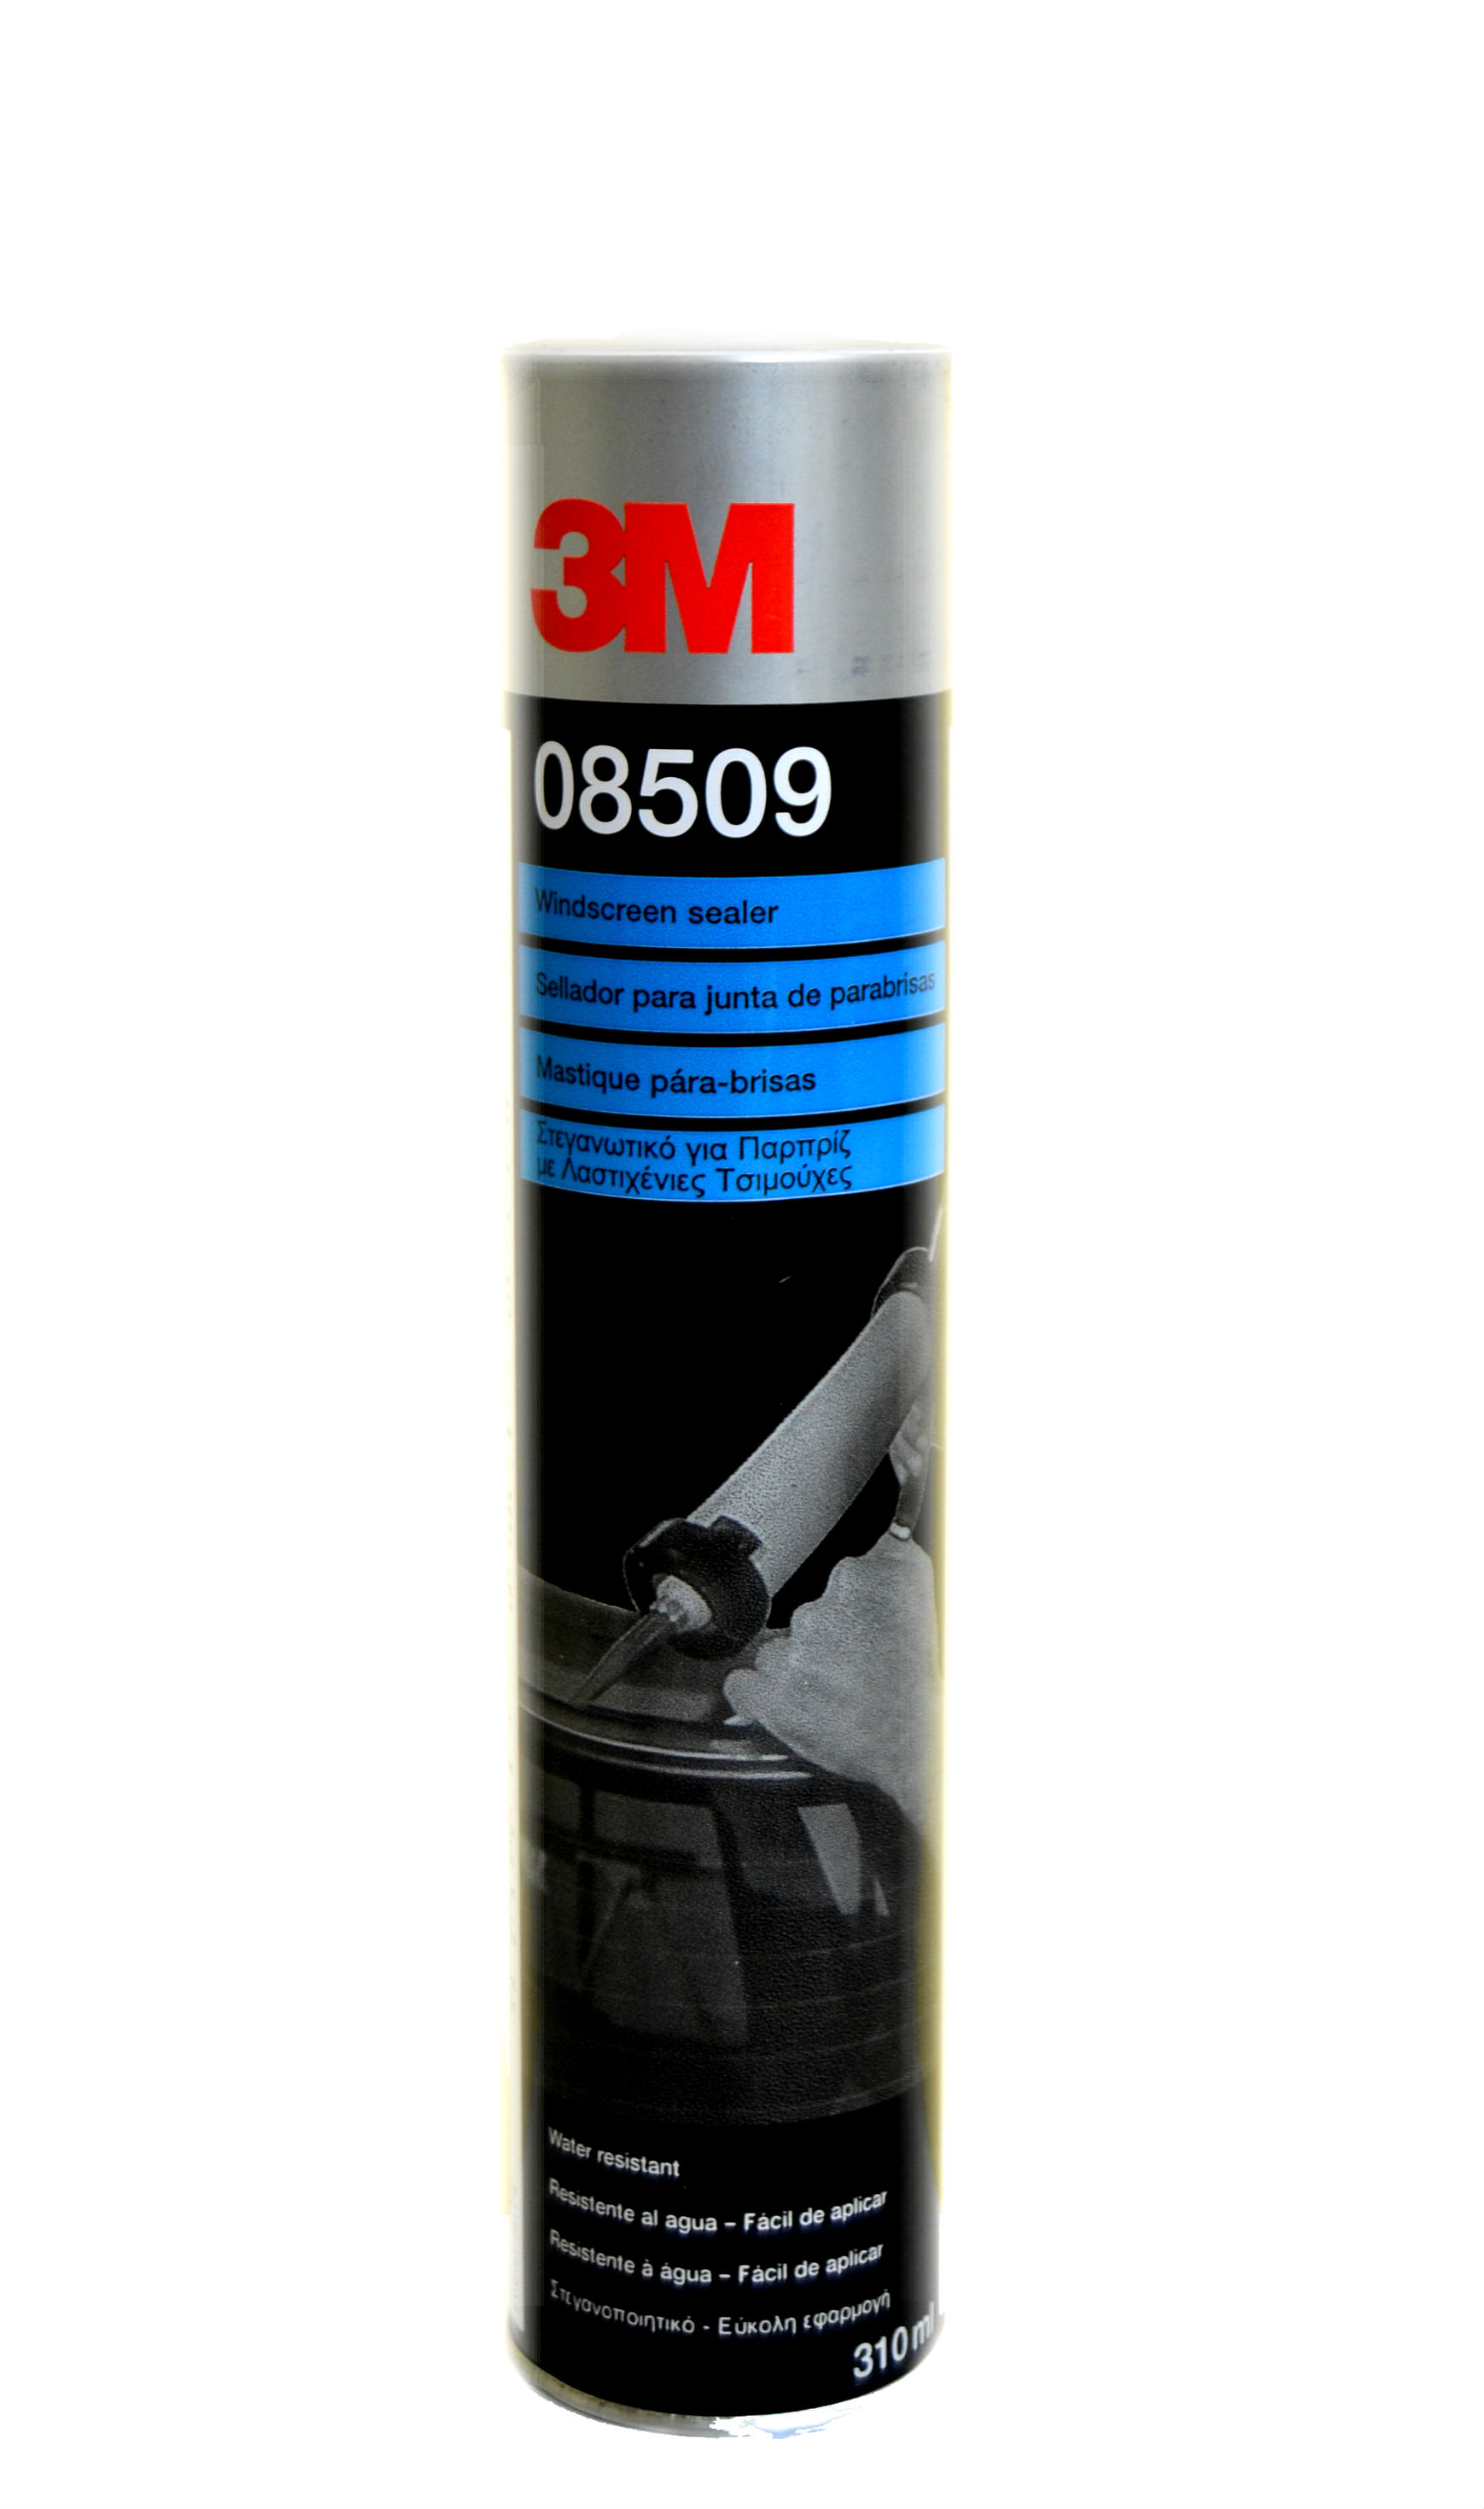 3M Windscreen Sealer Cartridge Black 310ml 08509